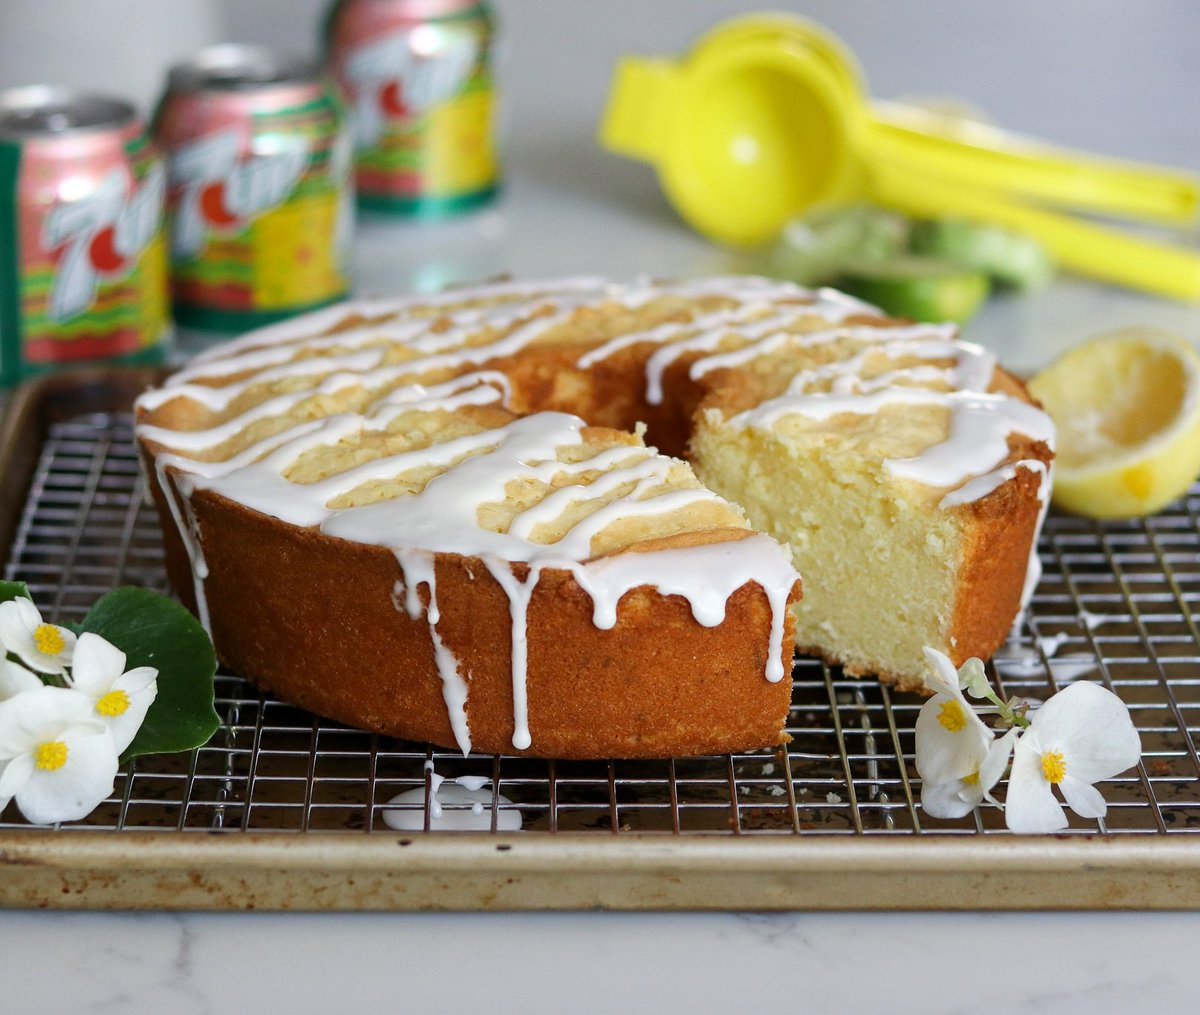 """7-Up Pound Cake. This recipe uses 7-Up AND boosts the flavor with the zest and juice of fresh lemons & limes. And like a proper pound cake, the recipe includes lots of eggs, butter & sugar. Ideal for BBQs, baby showers & retro parties. Recipe """"The Perfect Cake"""" @testkitchen<br>http://pic.twitter.com/CQdtYaoP7s"""